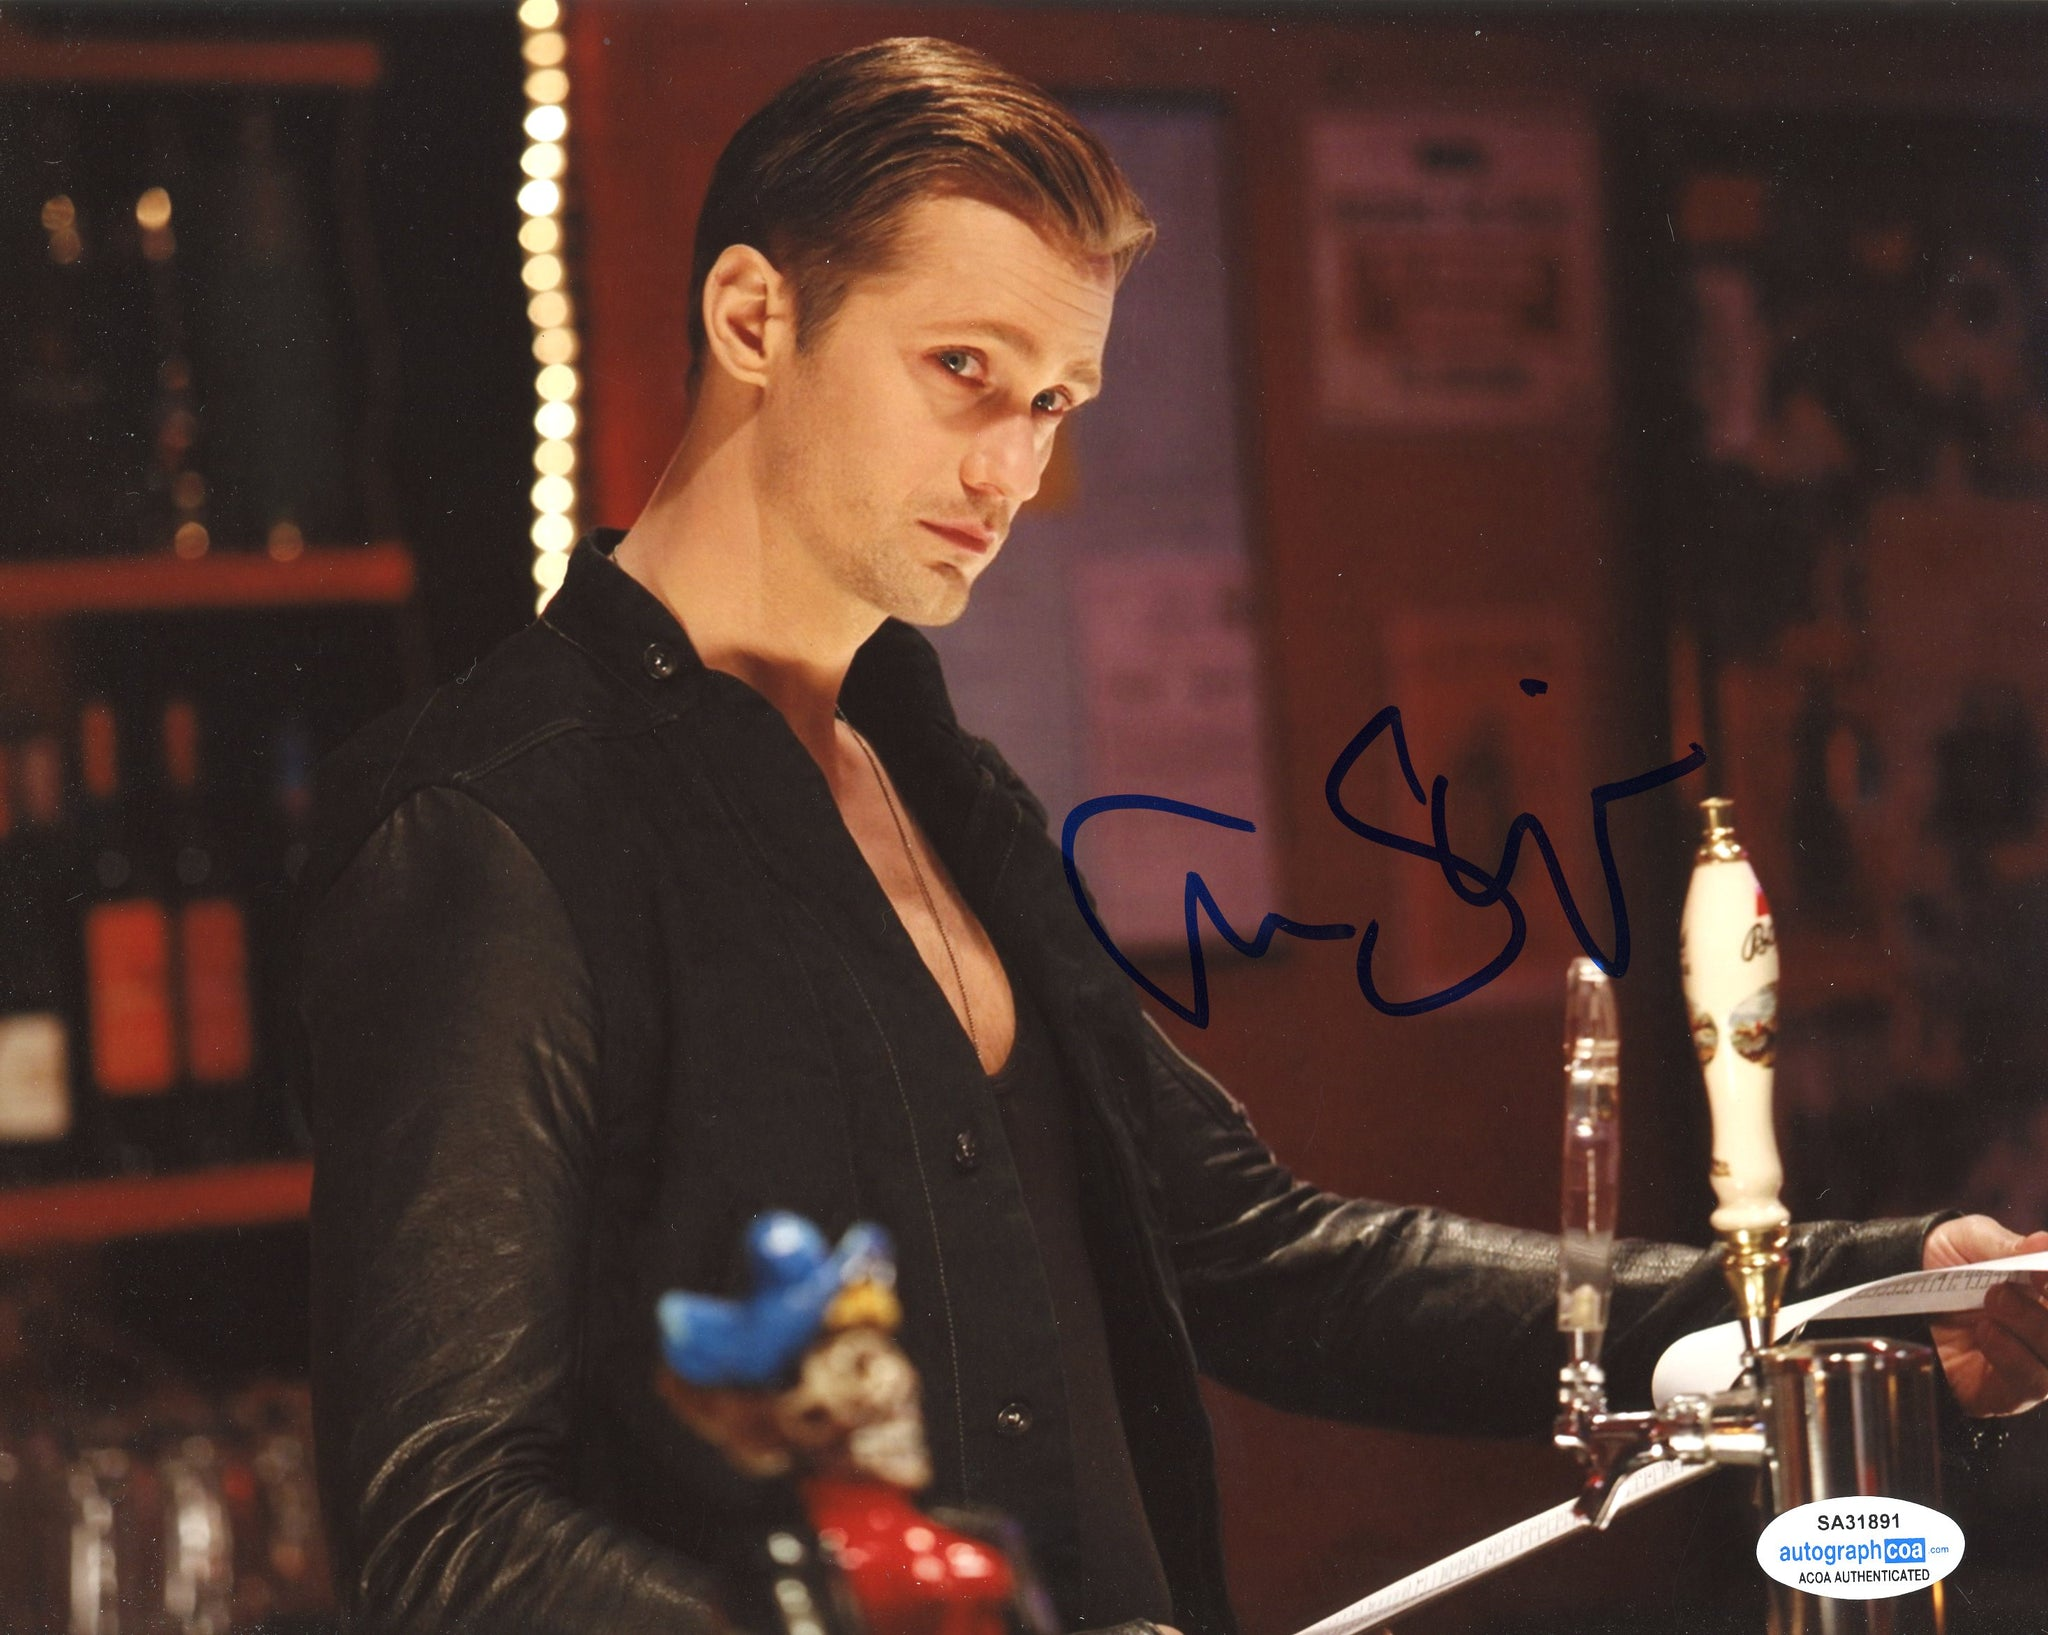 Alexander Alex Skarsgard True Blood Signed Autograph 8x10 Photo ACOA #6